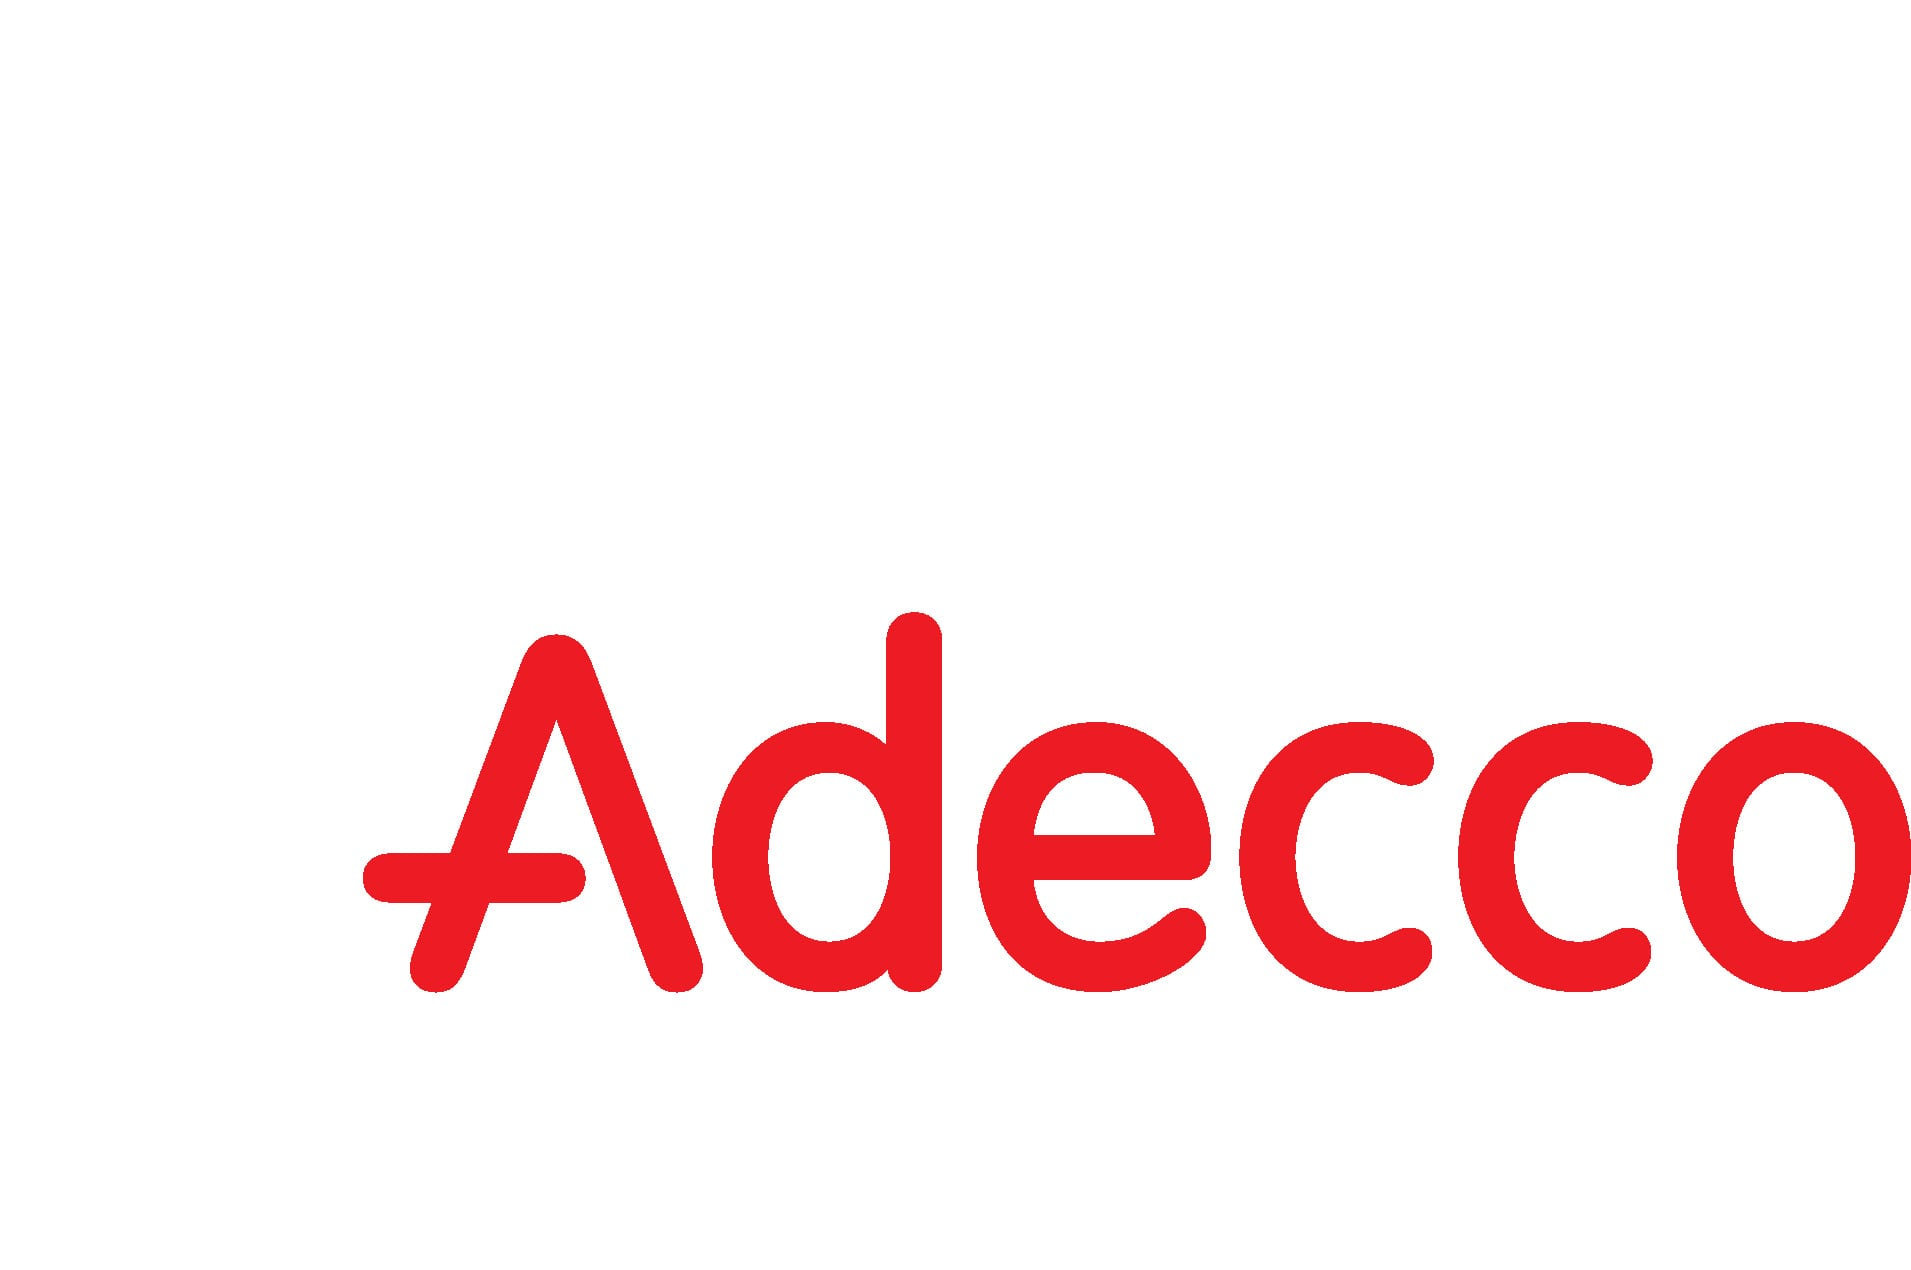 Adecco_logo_red (1)